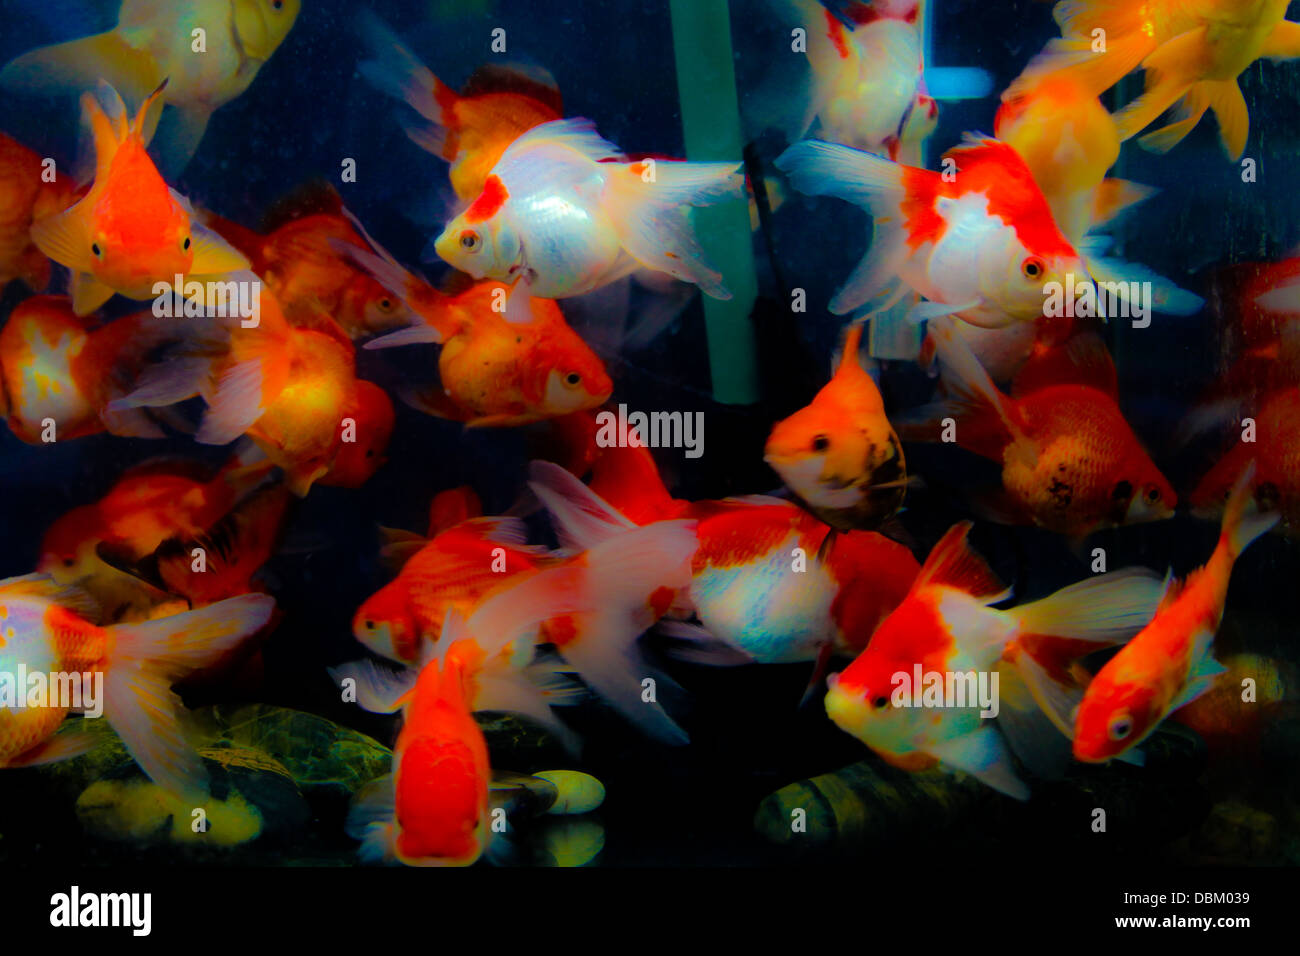 Fish Tank Stock Photos & Fish Tank Stock Images - Alamy